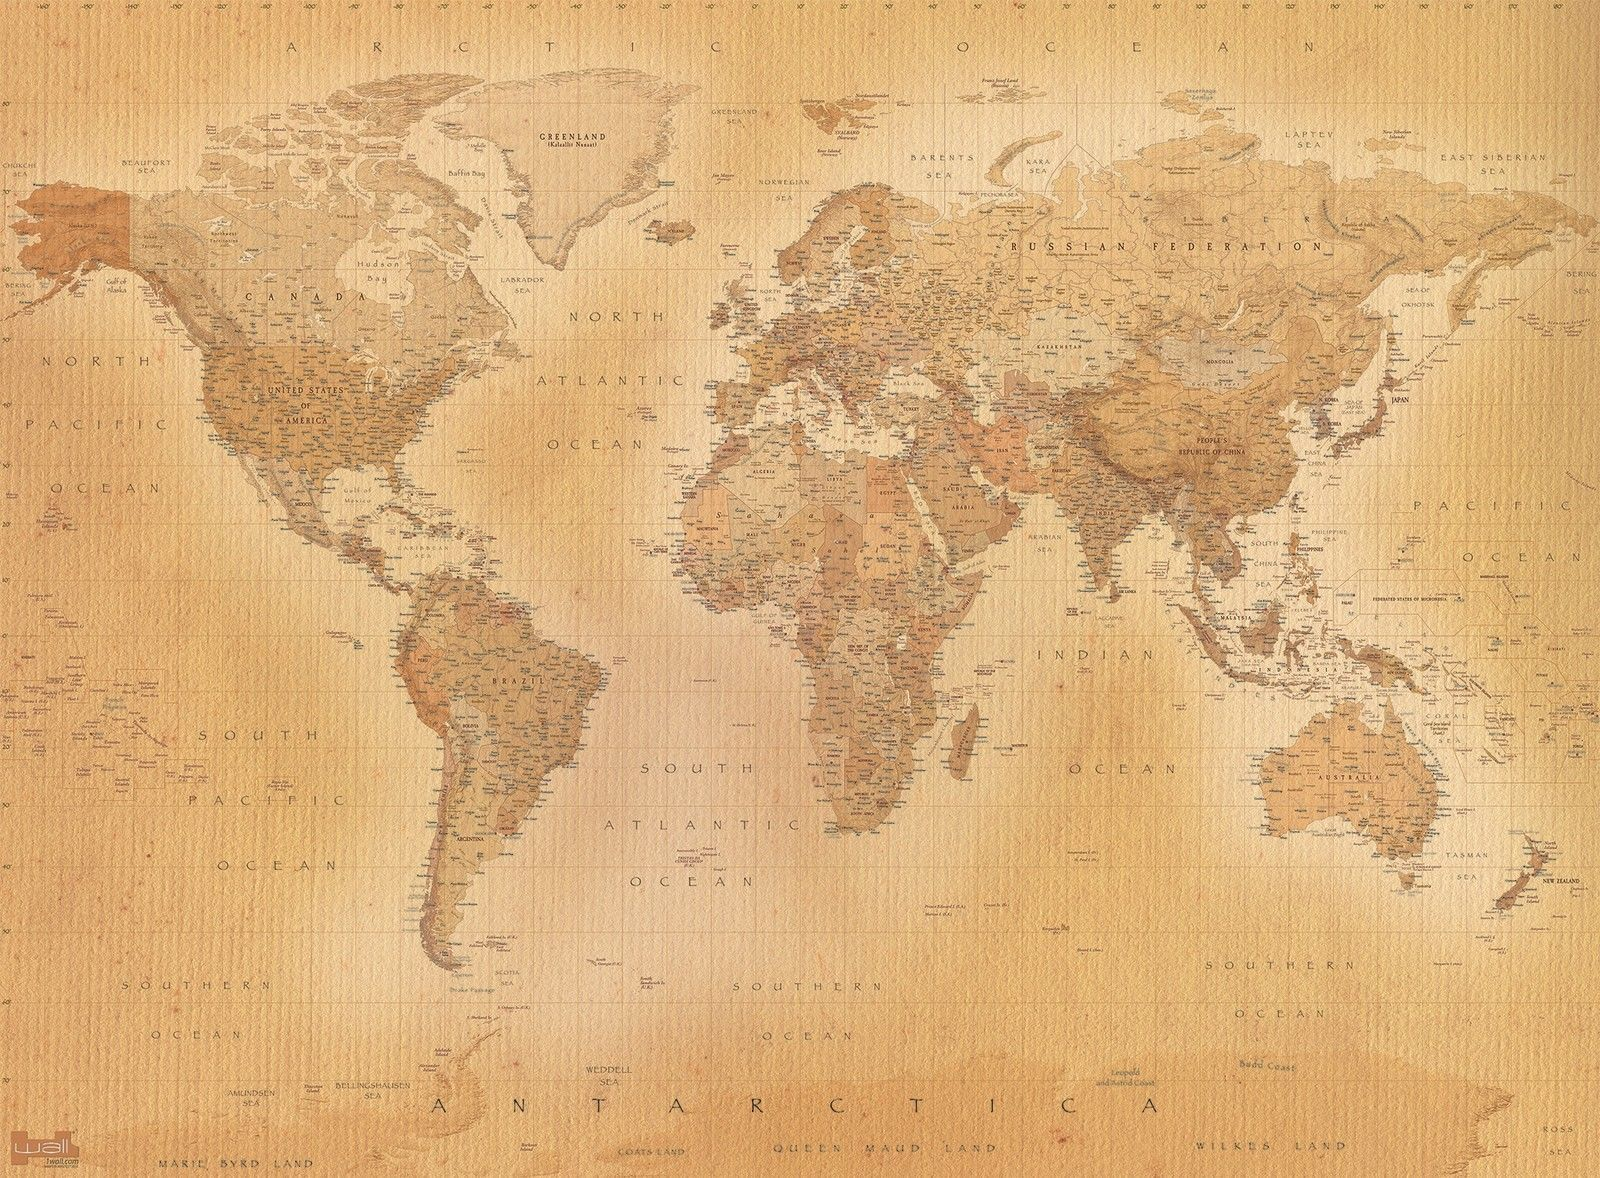 Old style vintage world map wallpaper wall mural 232m x 315m new old style vintage world map wallpaper wall mural 232m x 315m new free pp gumiabroncs Image collections